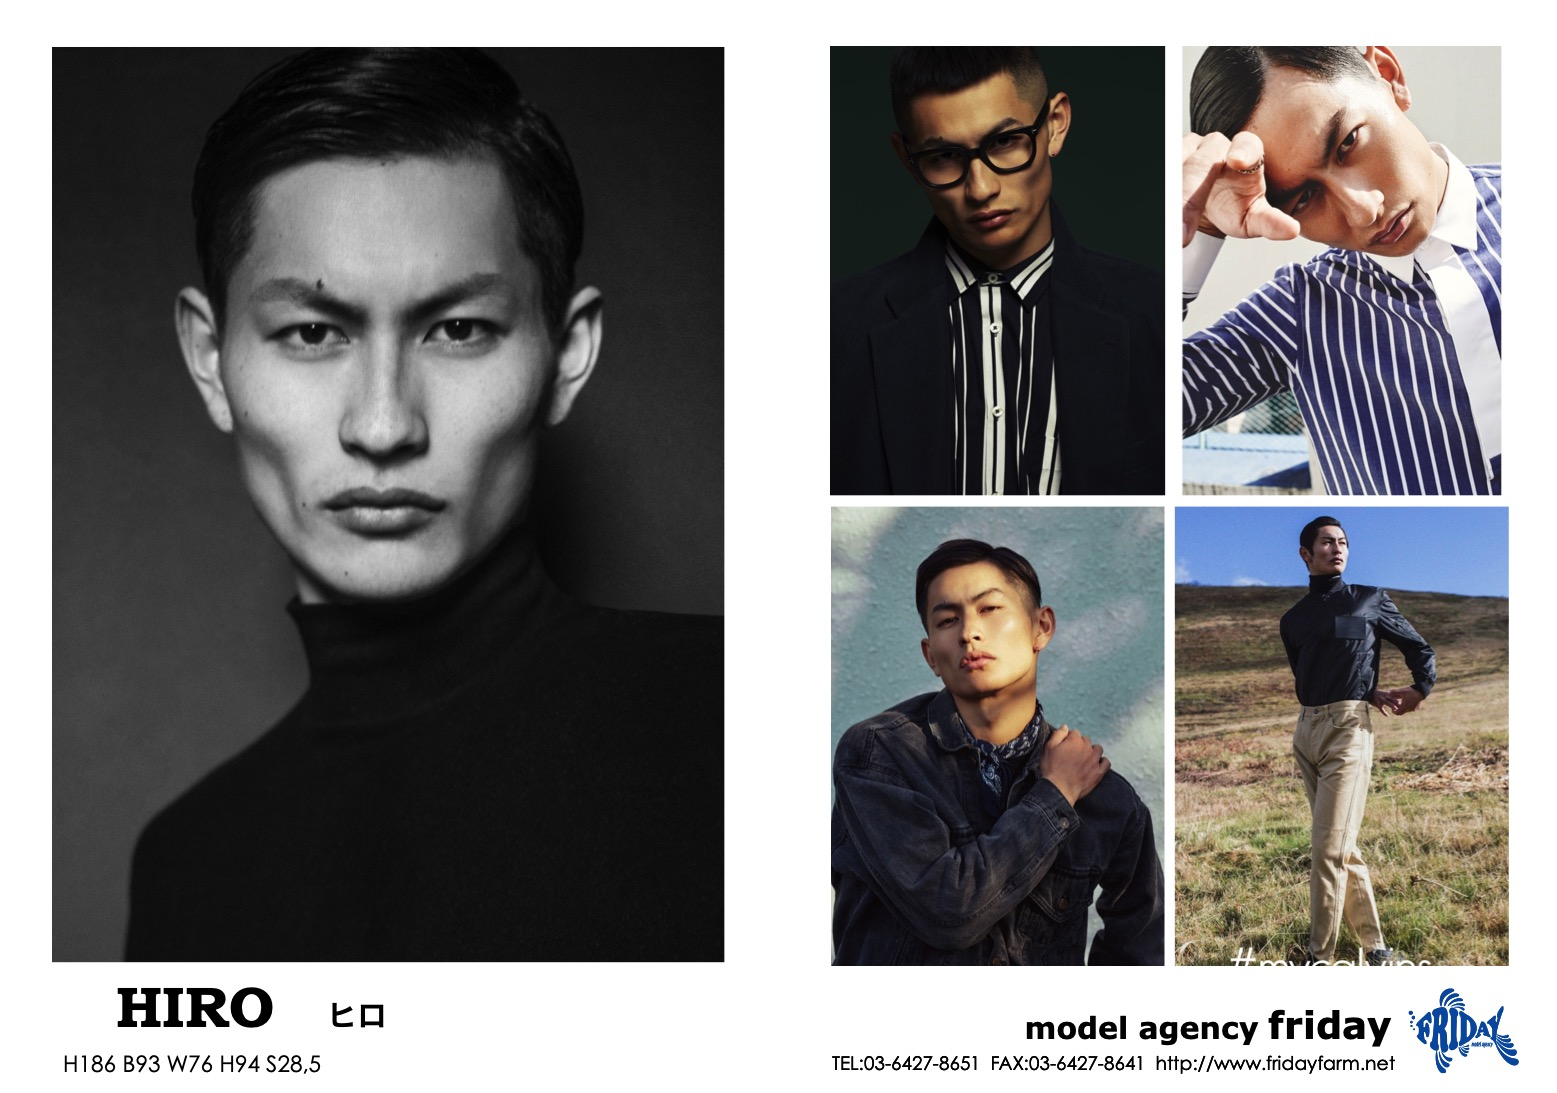 HIRO - ヒロ | model agency friday